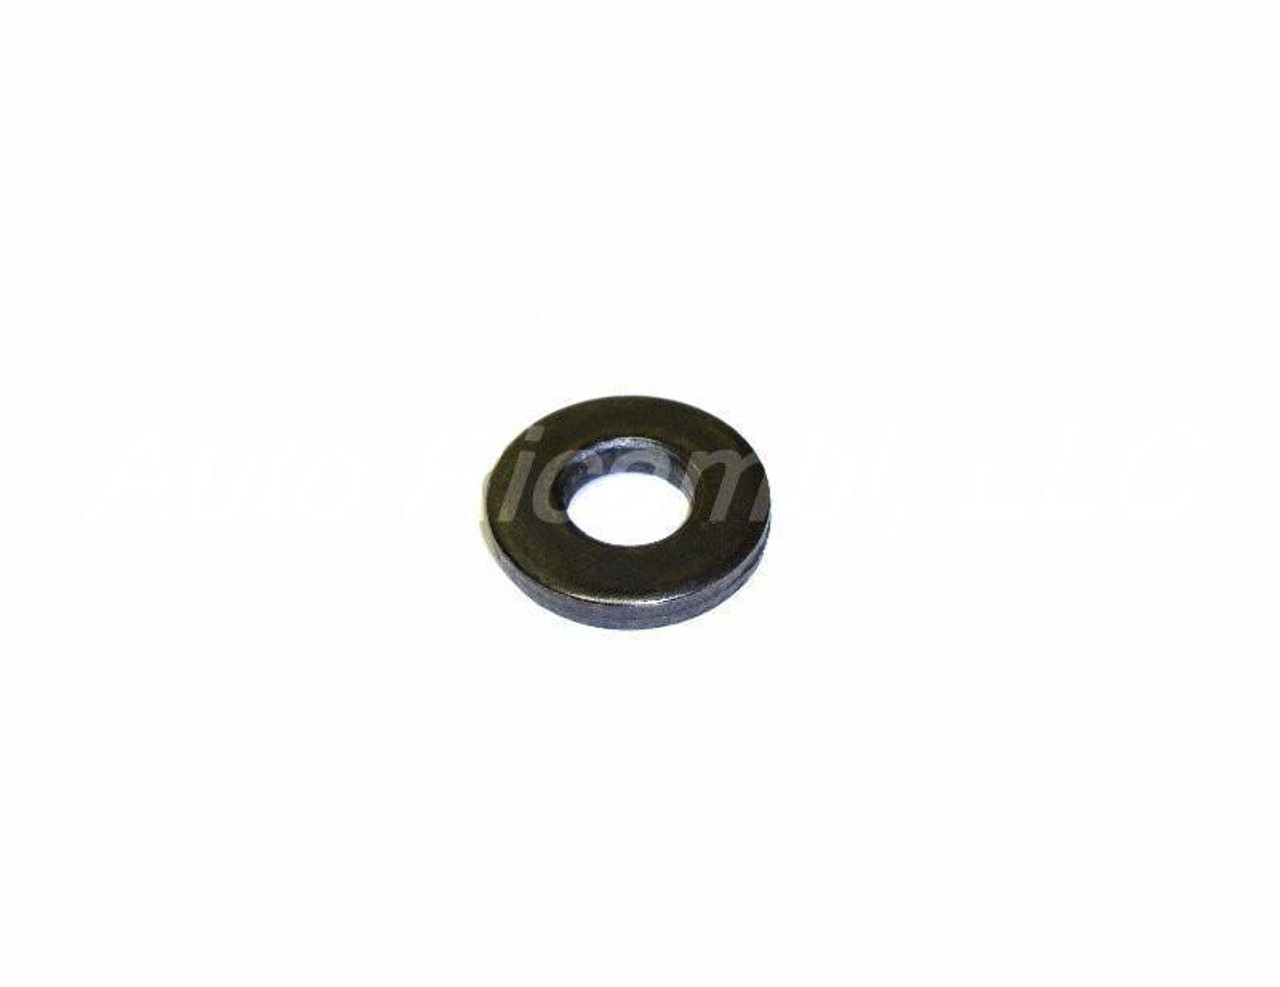 Cylinder Head Bolt Washer - OEM Original